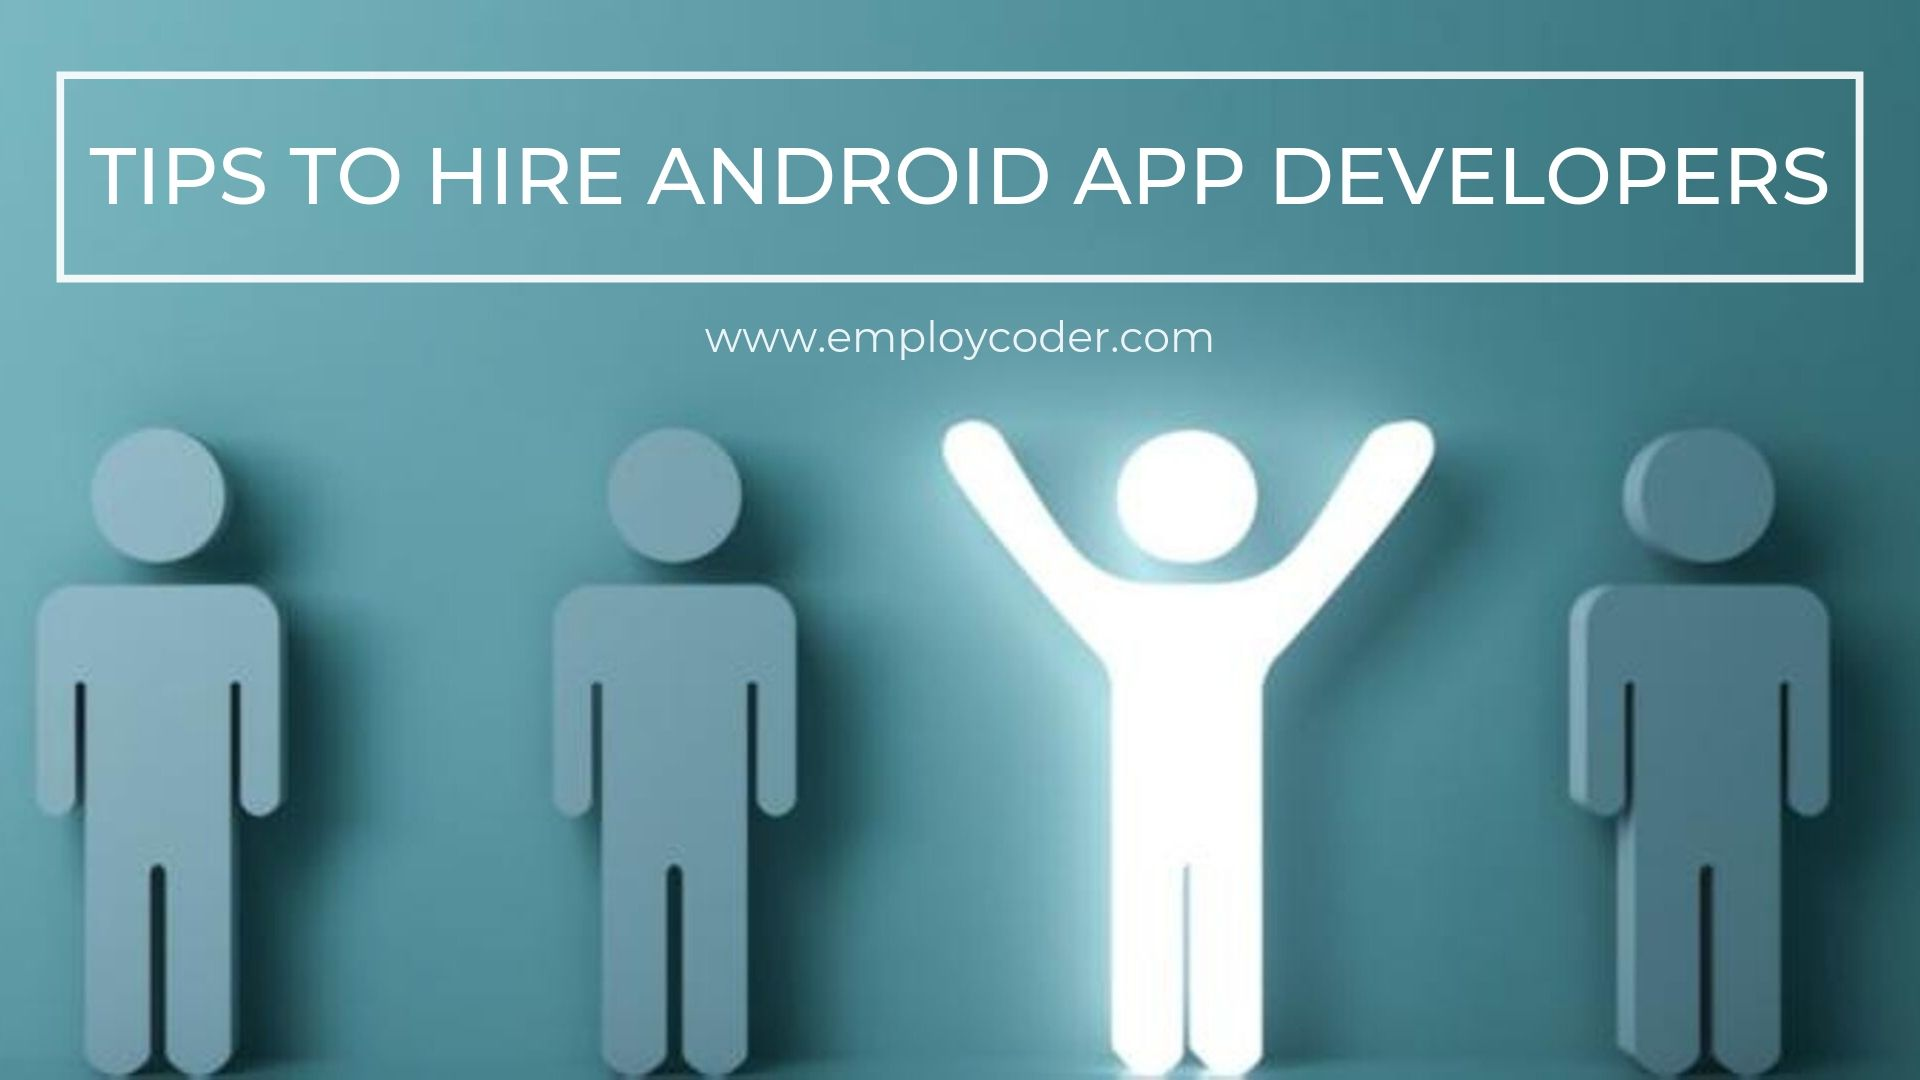 Tips to Hire Android App Developers